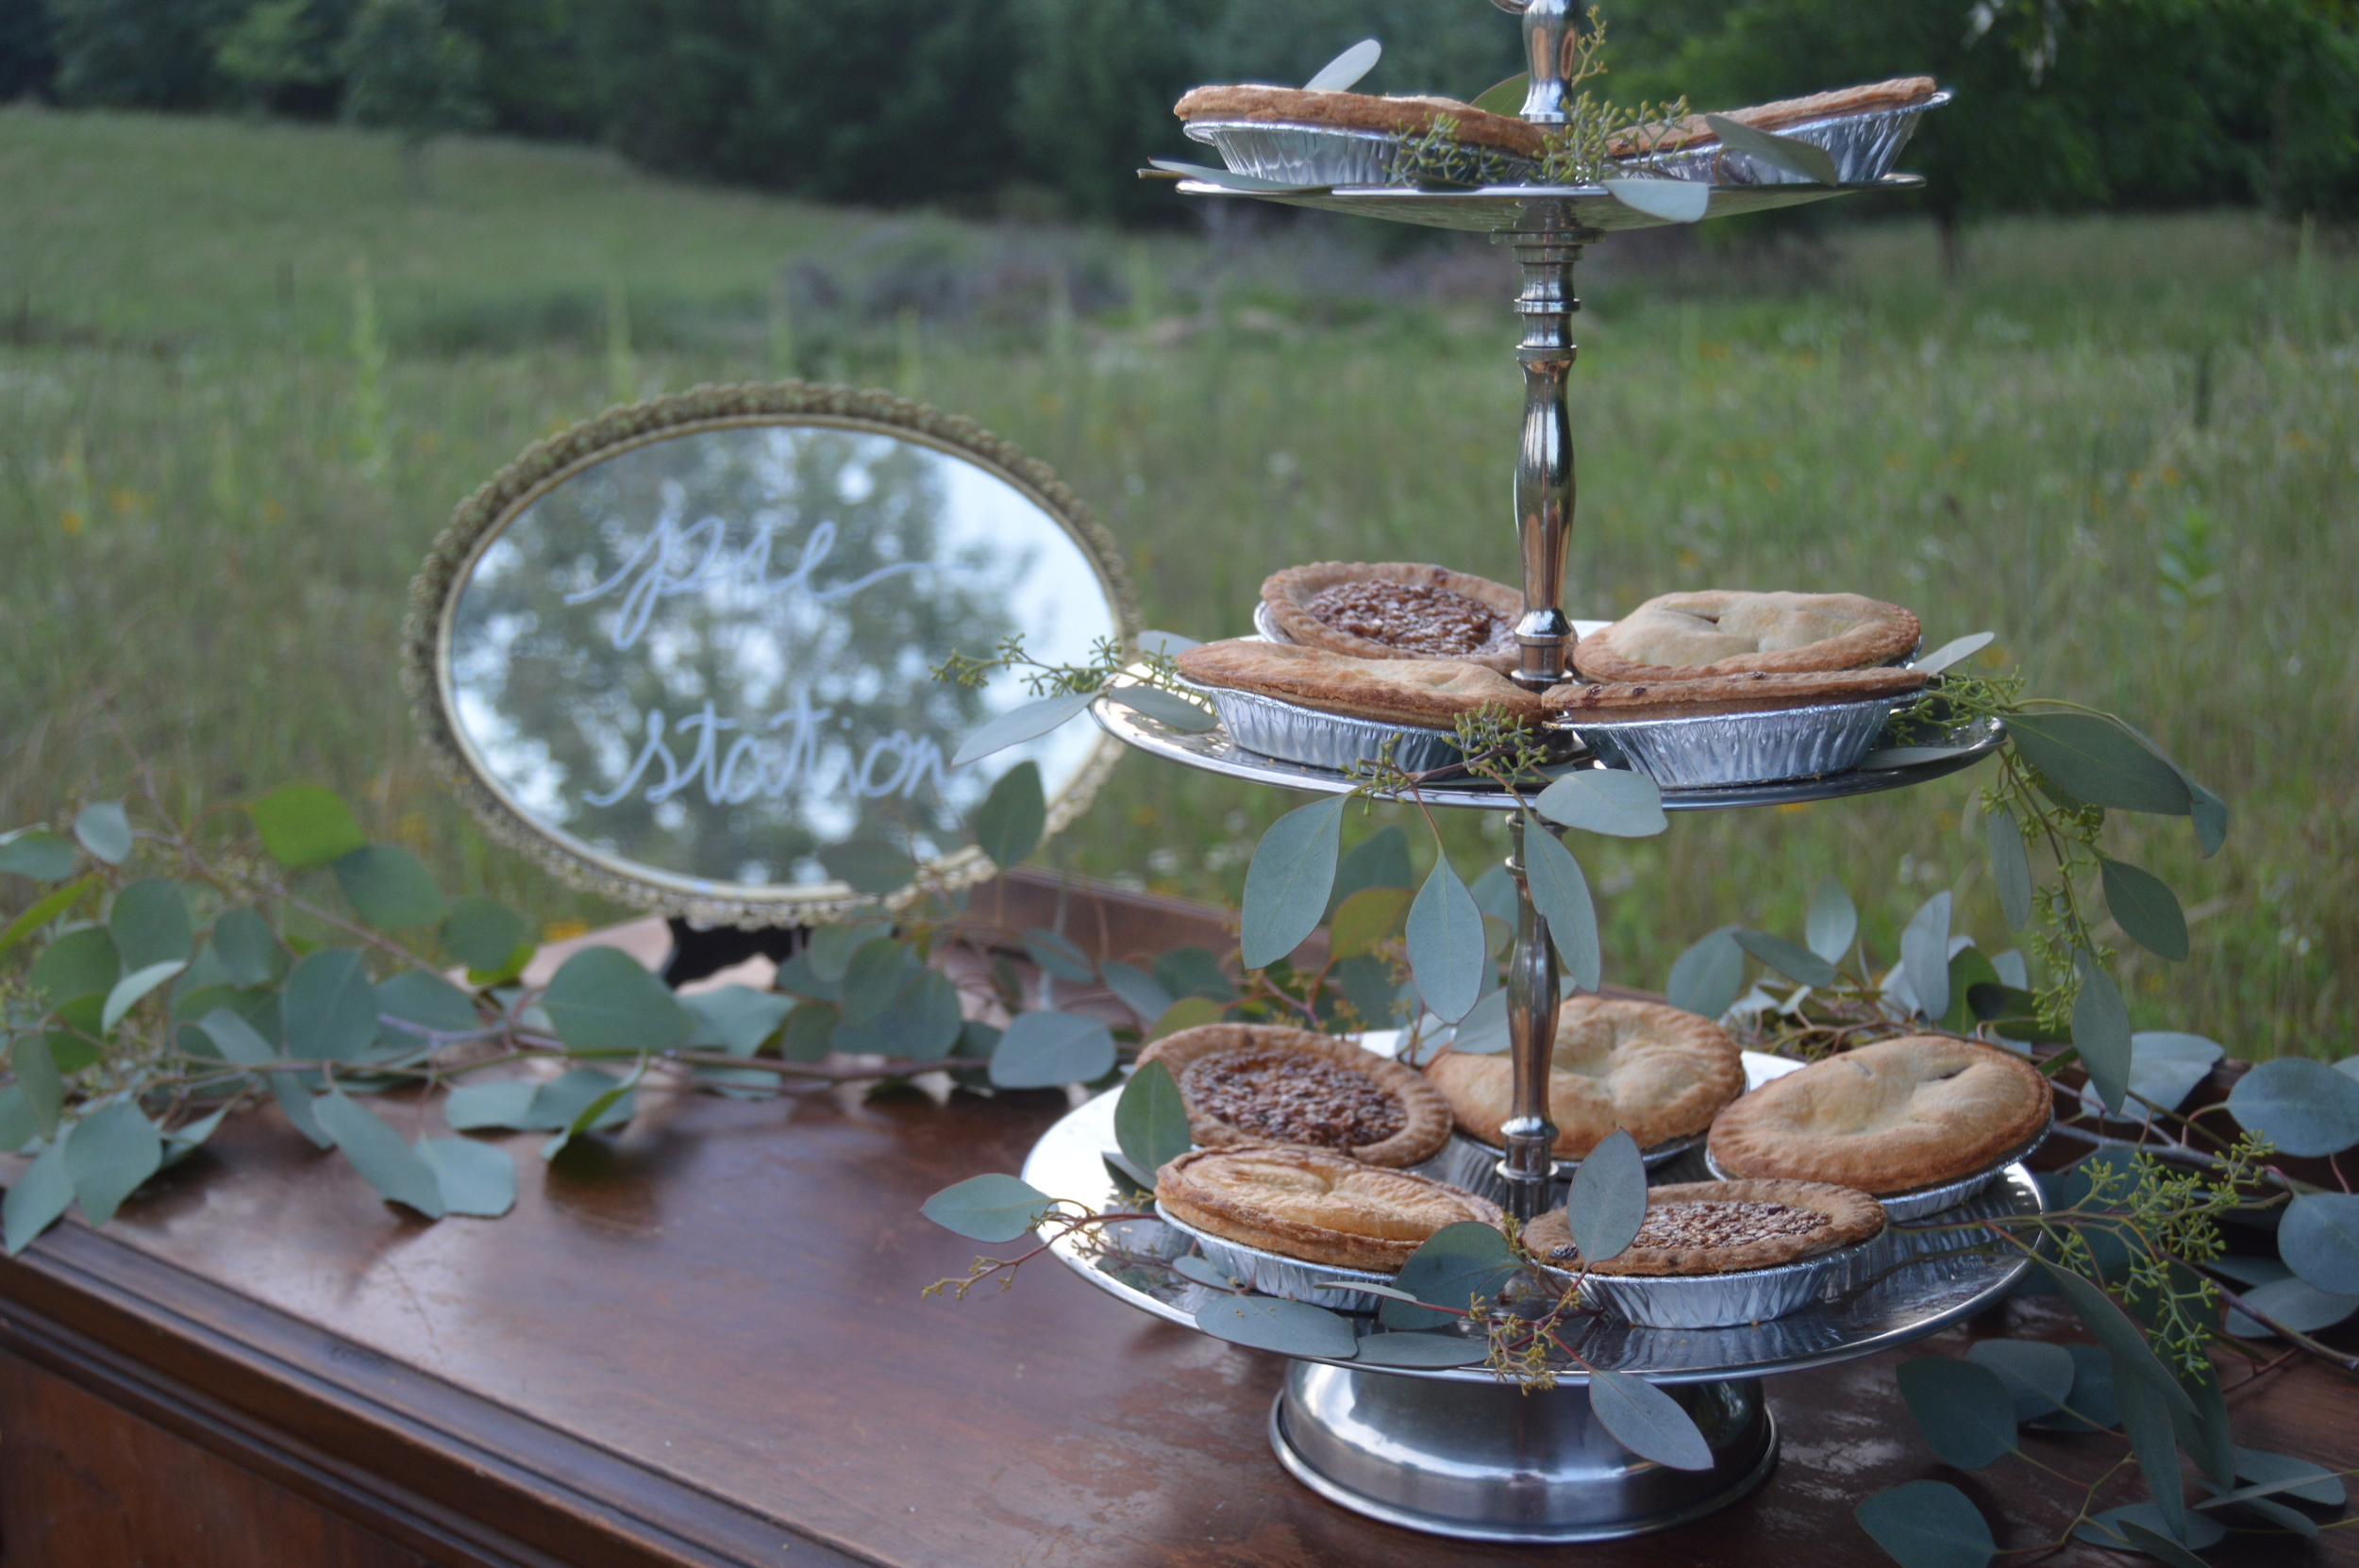 pie station pie tower pecan pie apple pie lemon pie wedding pies